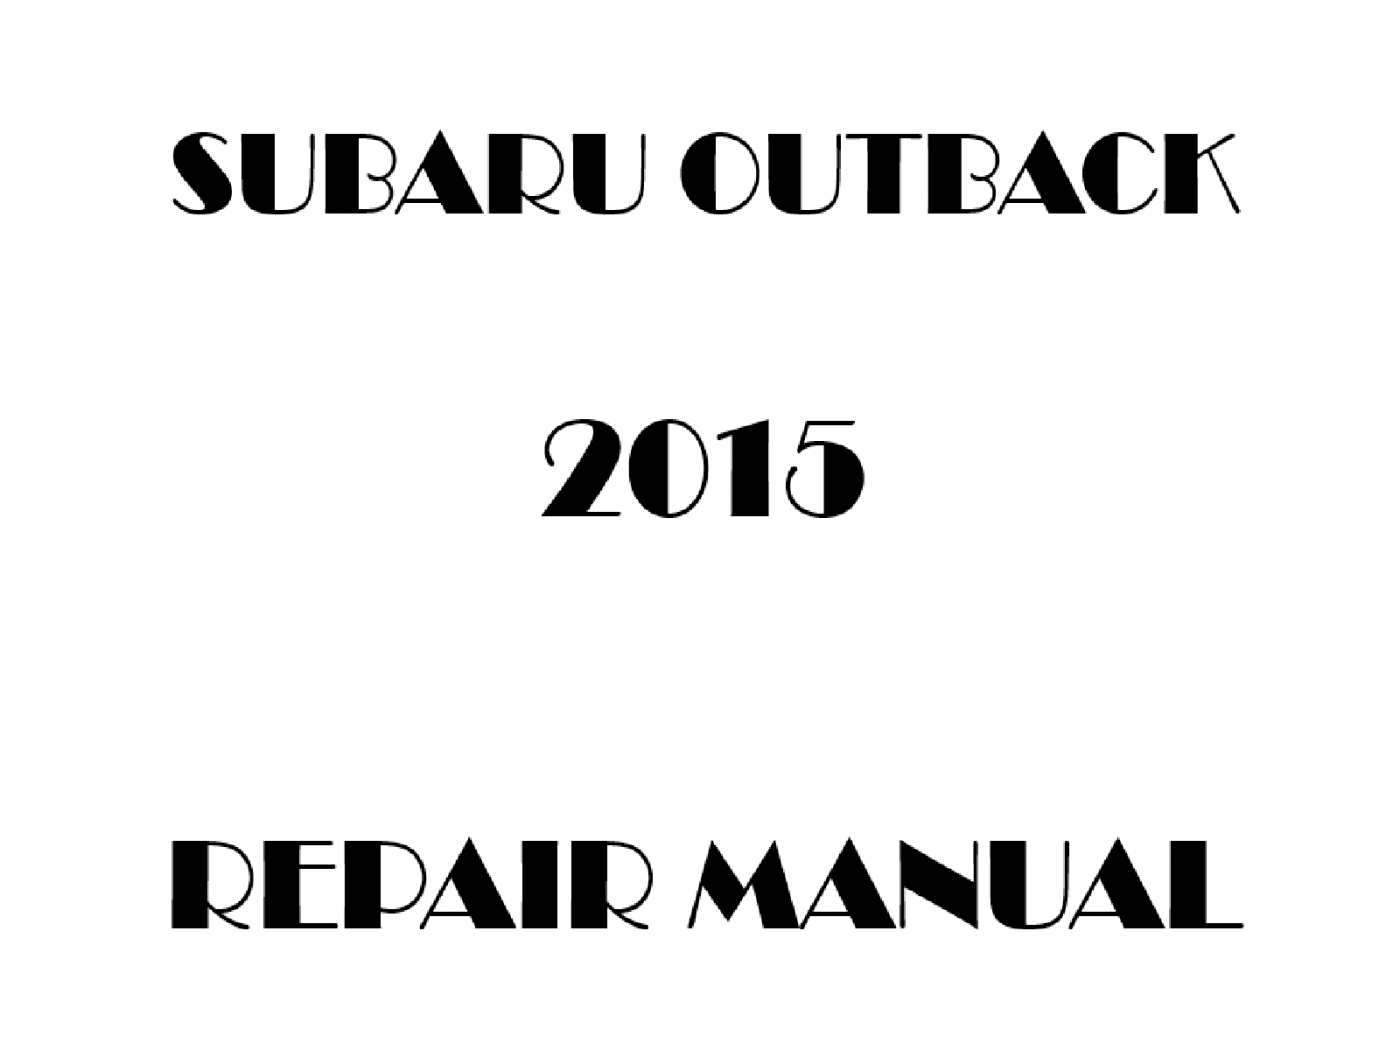 2015 Subaru Outback repair manual